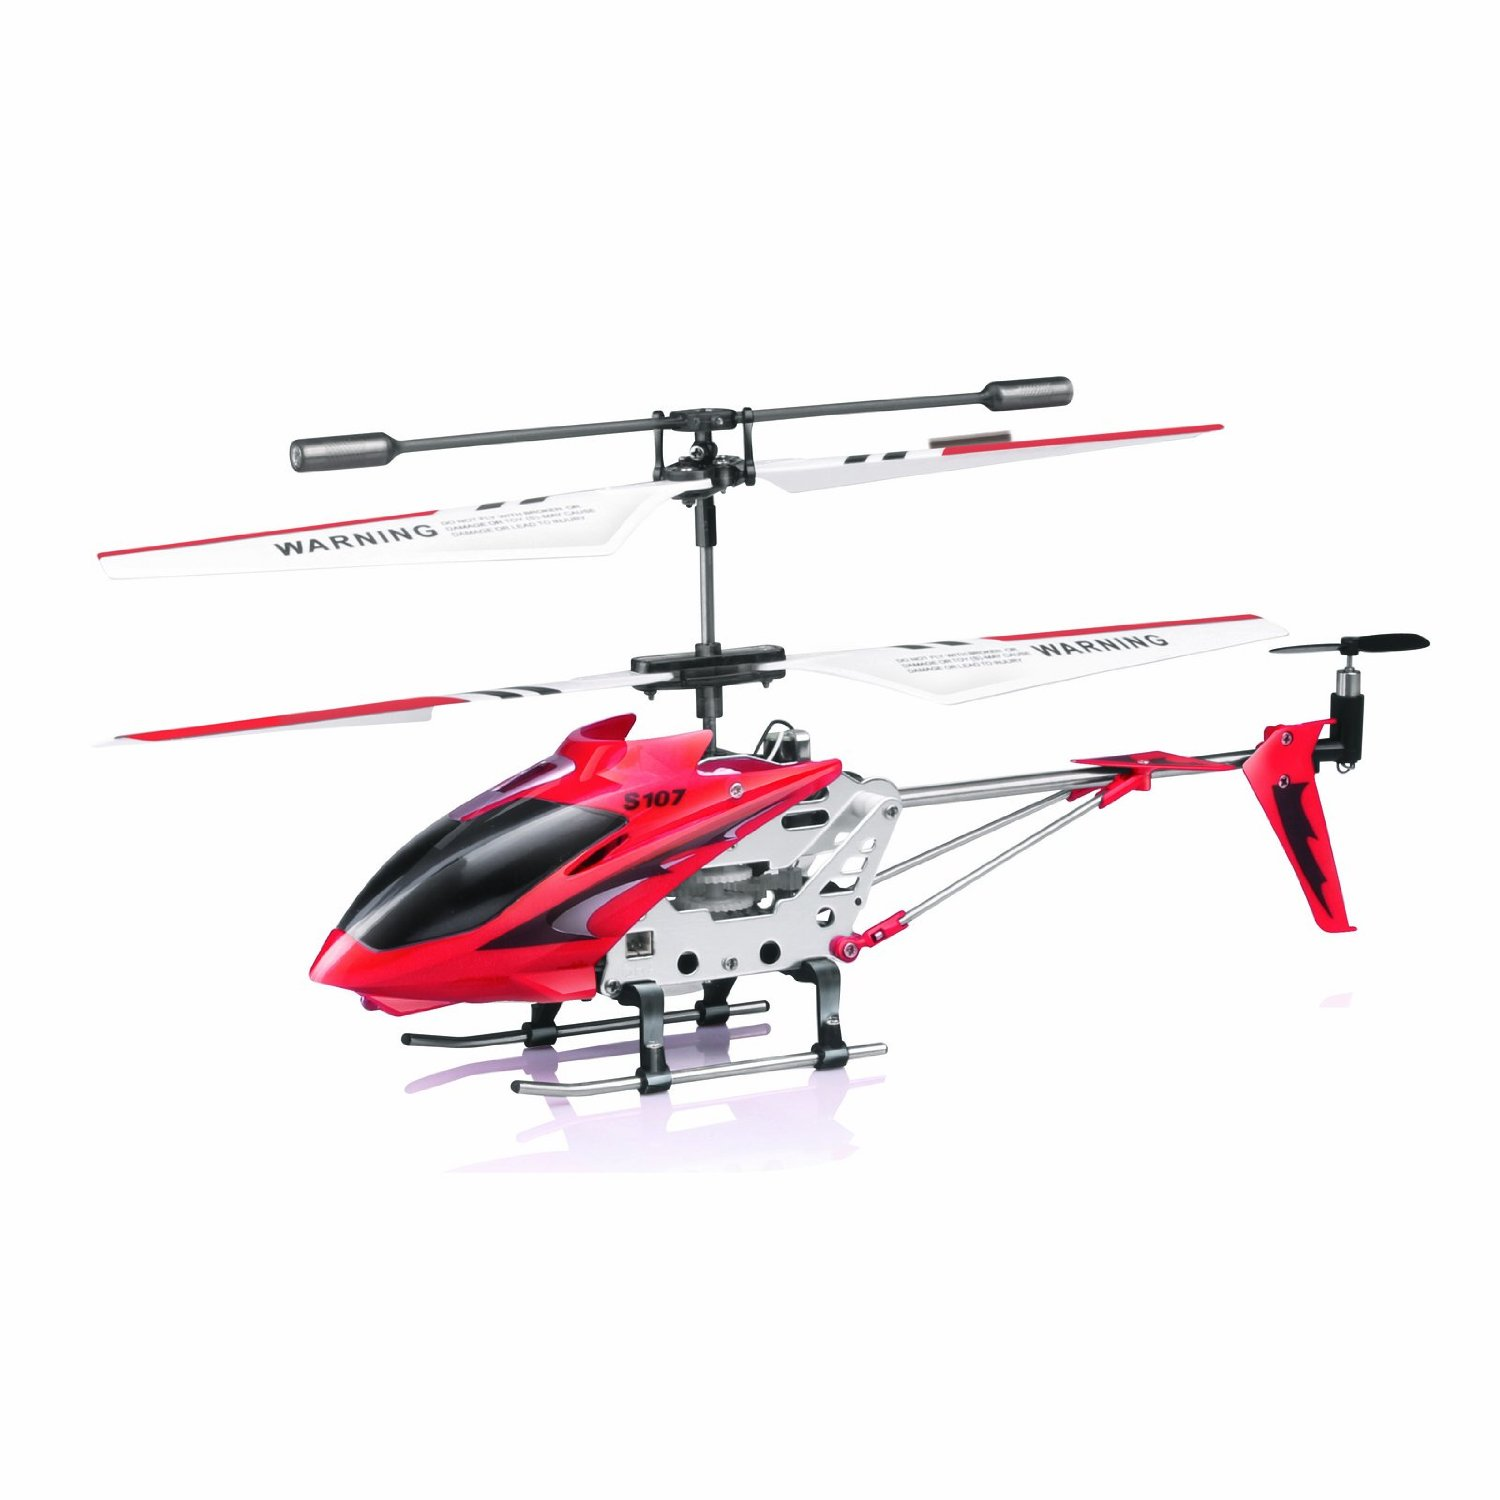 Syma S107/S107G R/C Helicopter with Gyro- Red review